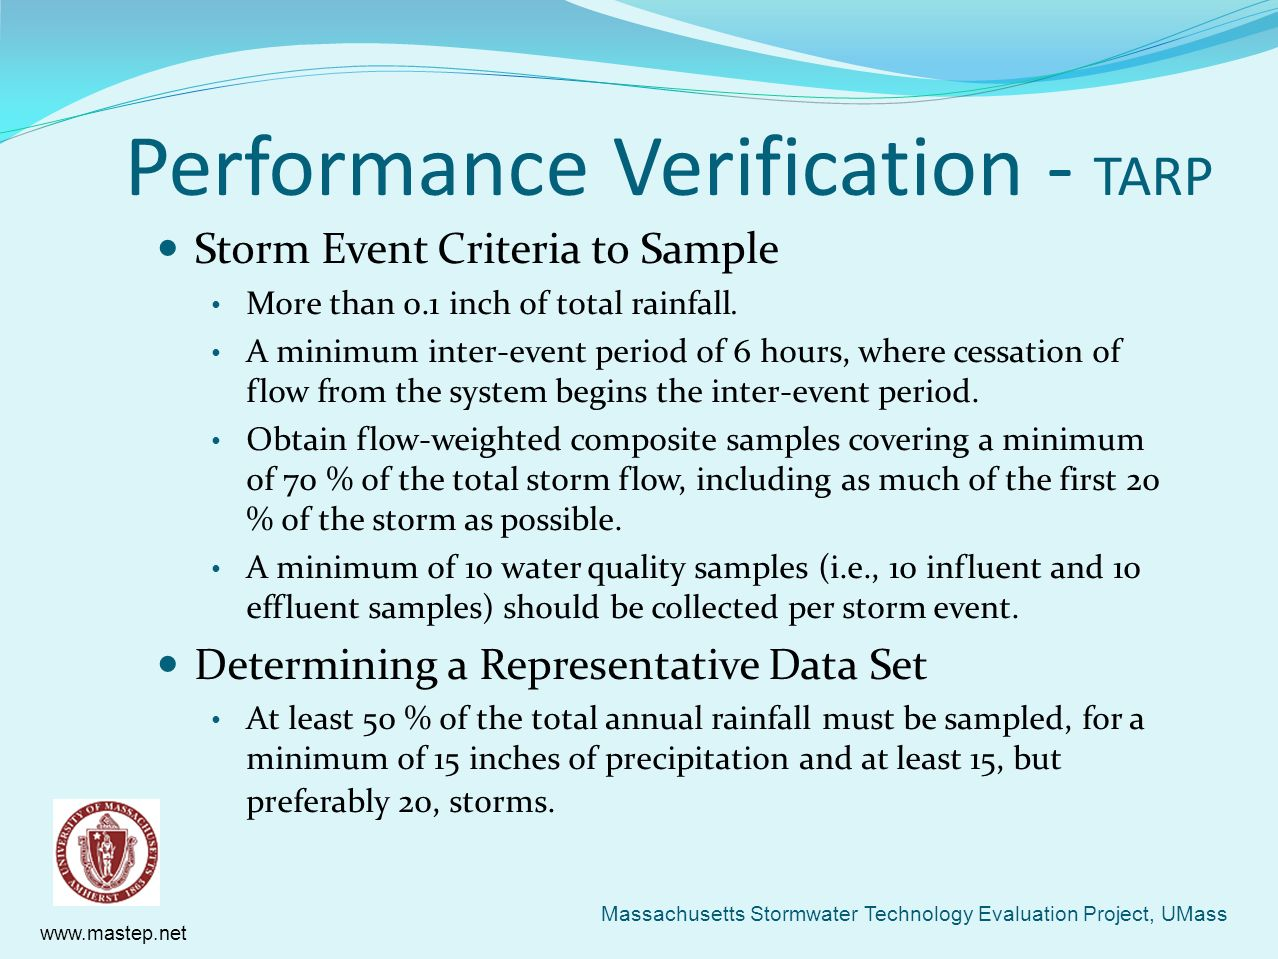 Performance Verification - TARP